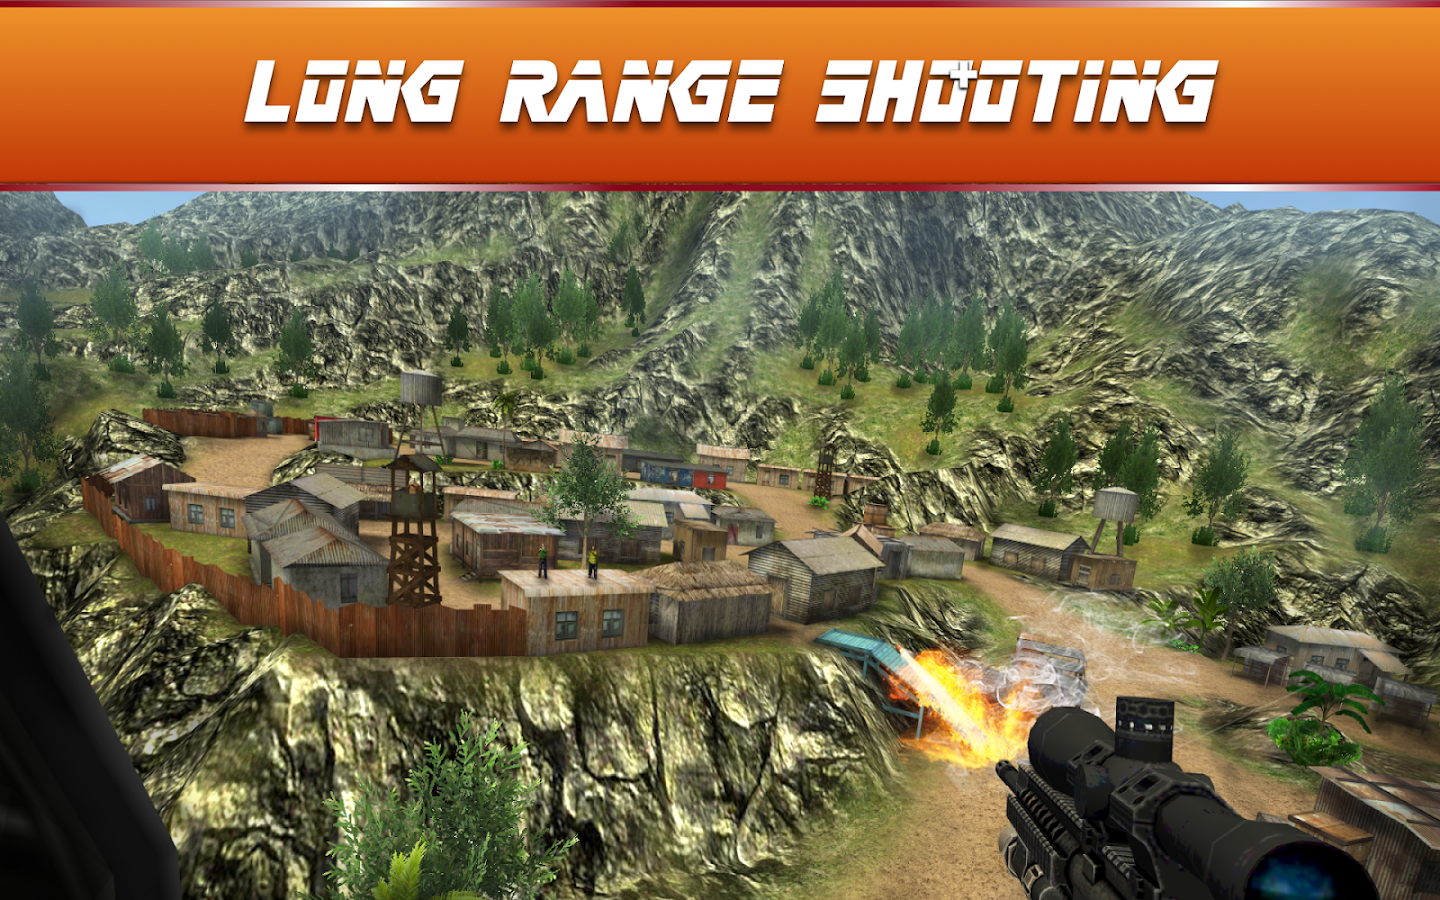 Sniper Ops - 3D Shooting Game Screenshot 3